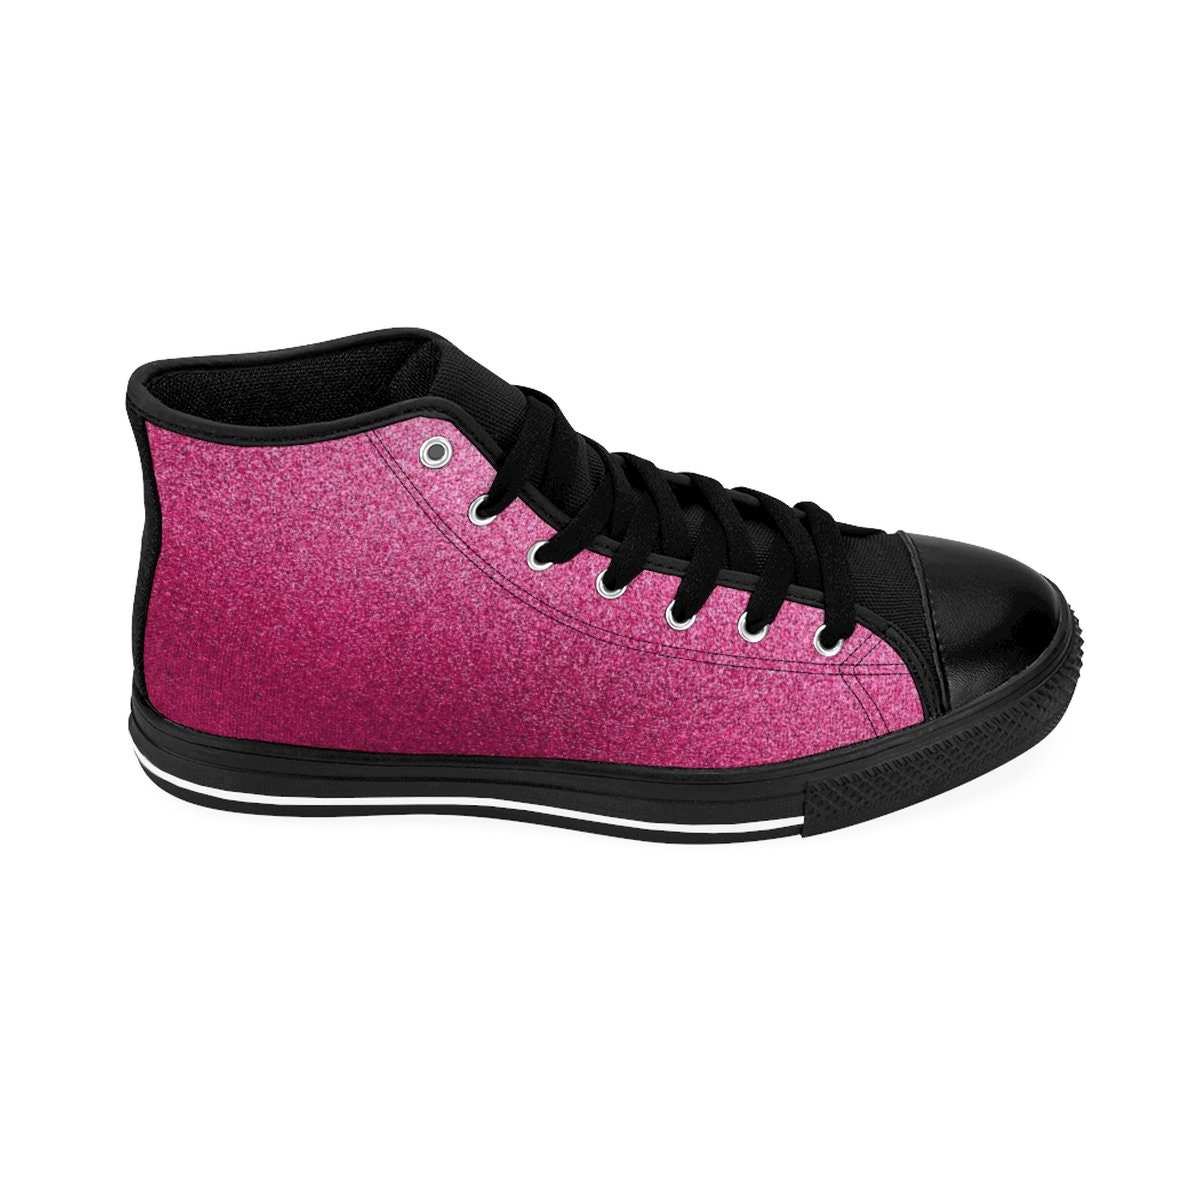 WoHommes S S S Glitter PinkHighTop Sneakers 371781